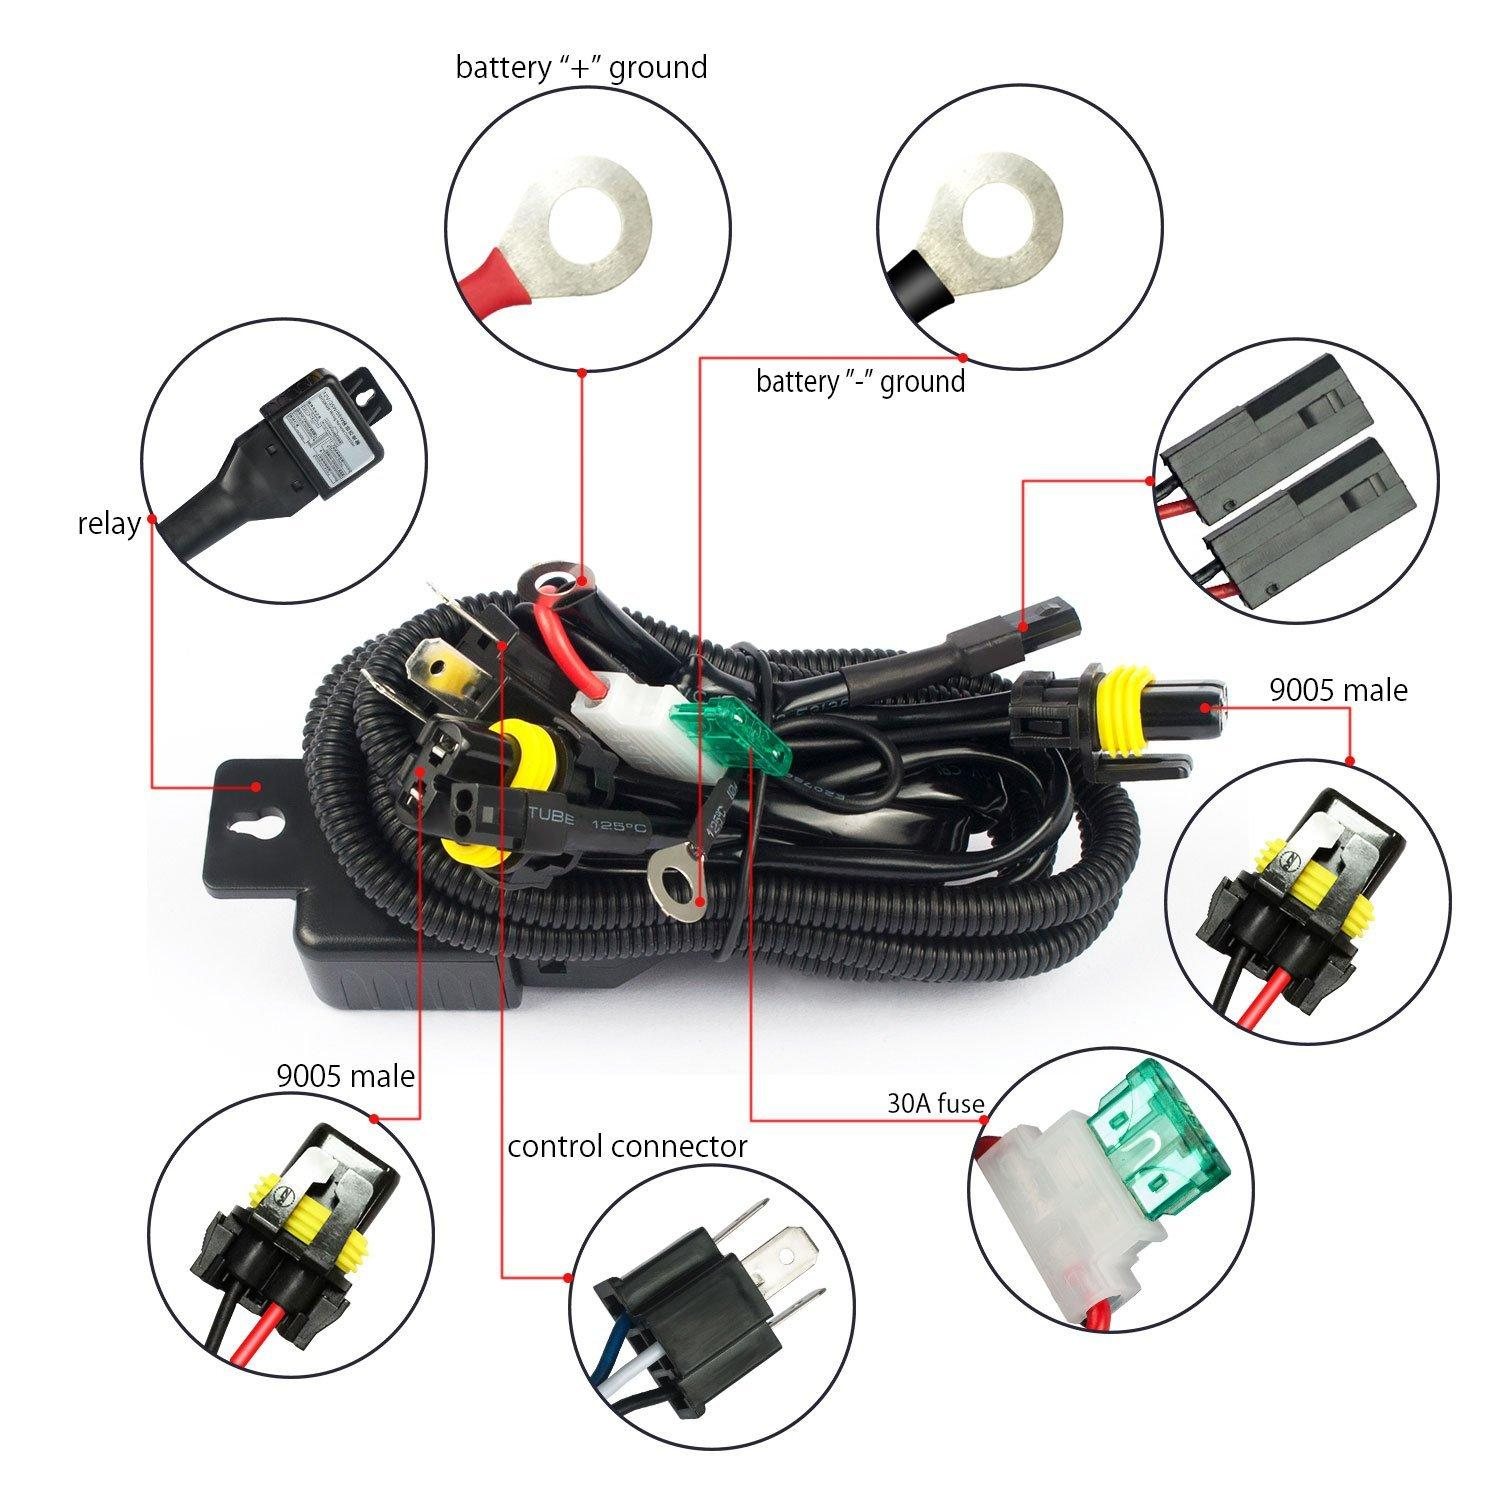 hight resolution of h4 hid relay harness hid xenon kit h4 3 h13 3 9004 3 9007 3 bixenon wiring harness hi lo controller wire cable harness hids conversion kits hids for cars